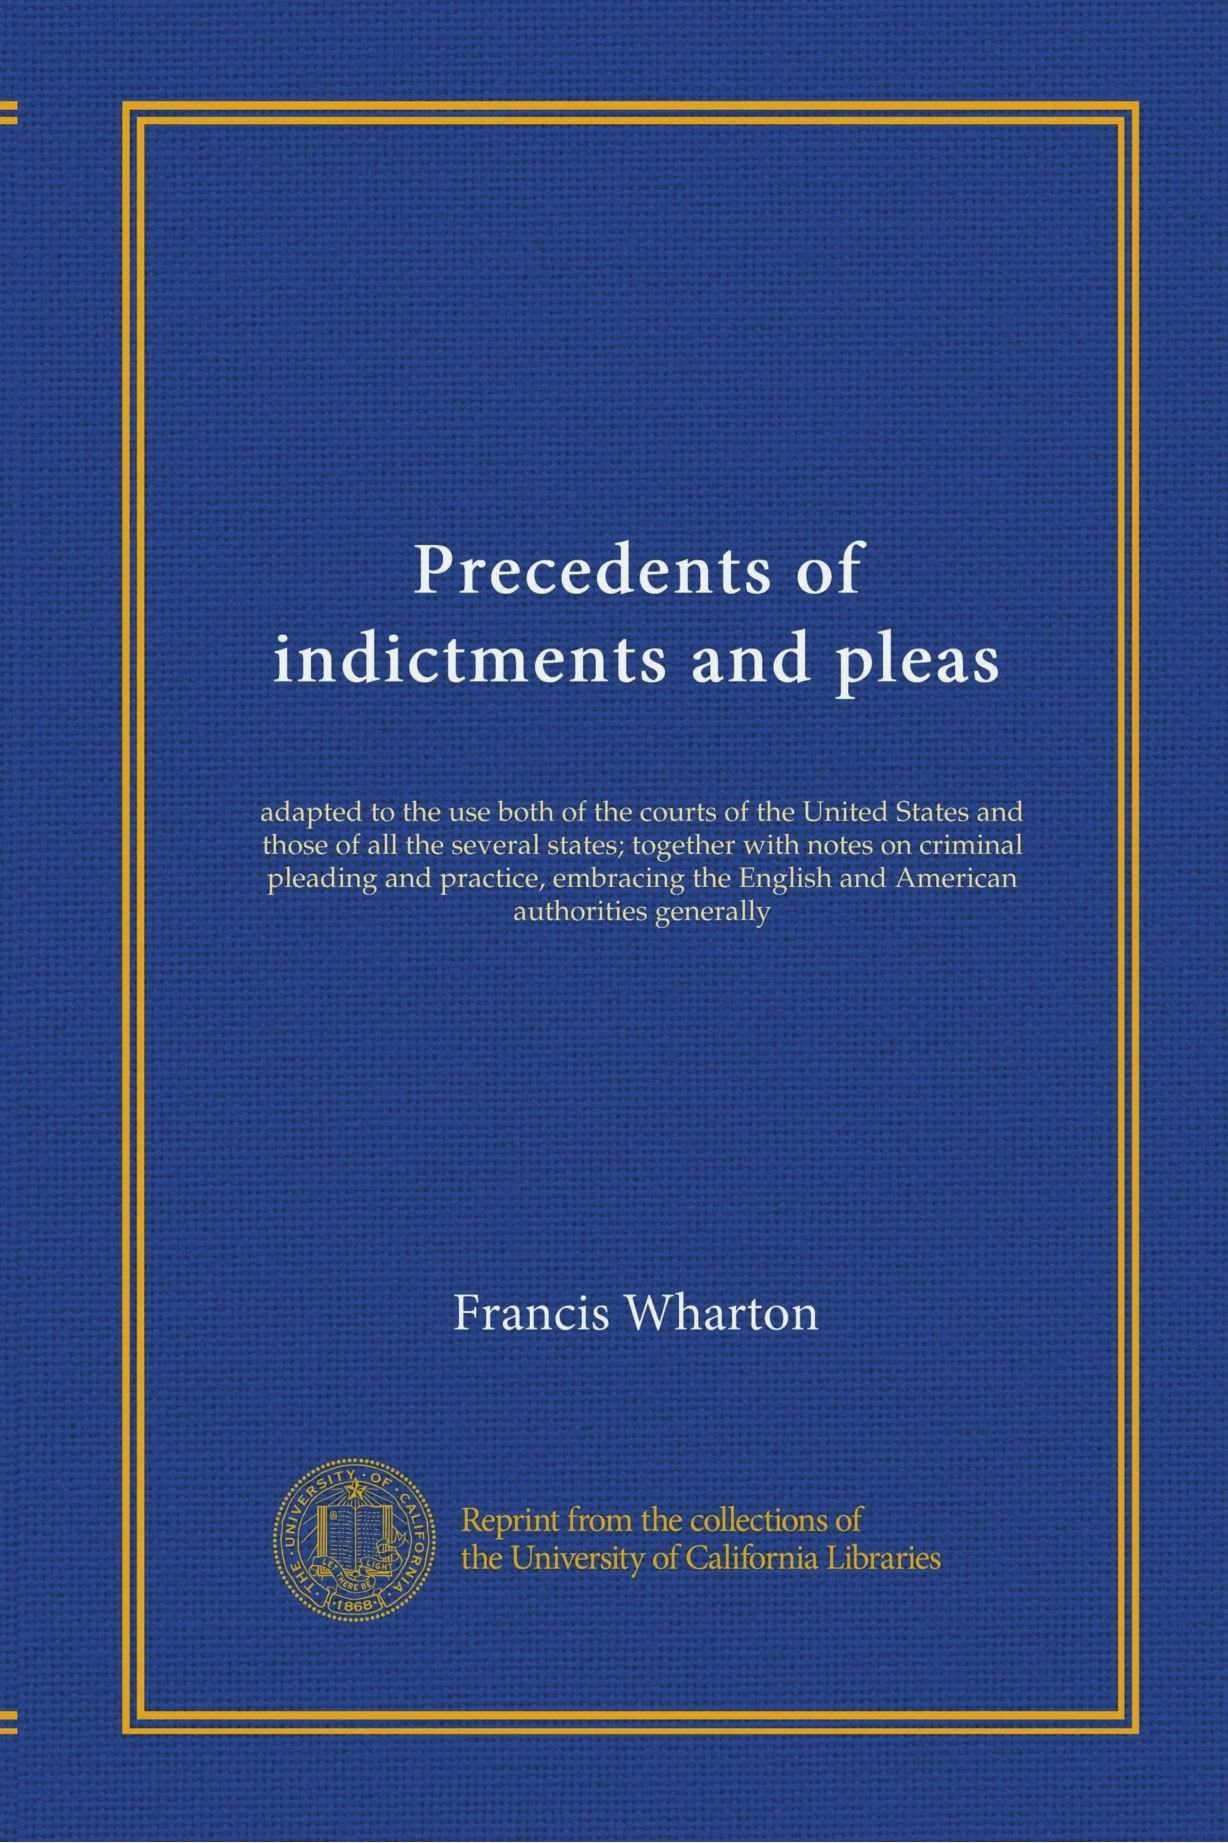 Precedents of indictments and pleas (v.1): adapted to the use both of the courts of the United States and those of all the several states; together ... English and American authorities generally PDF